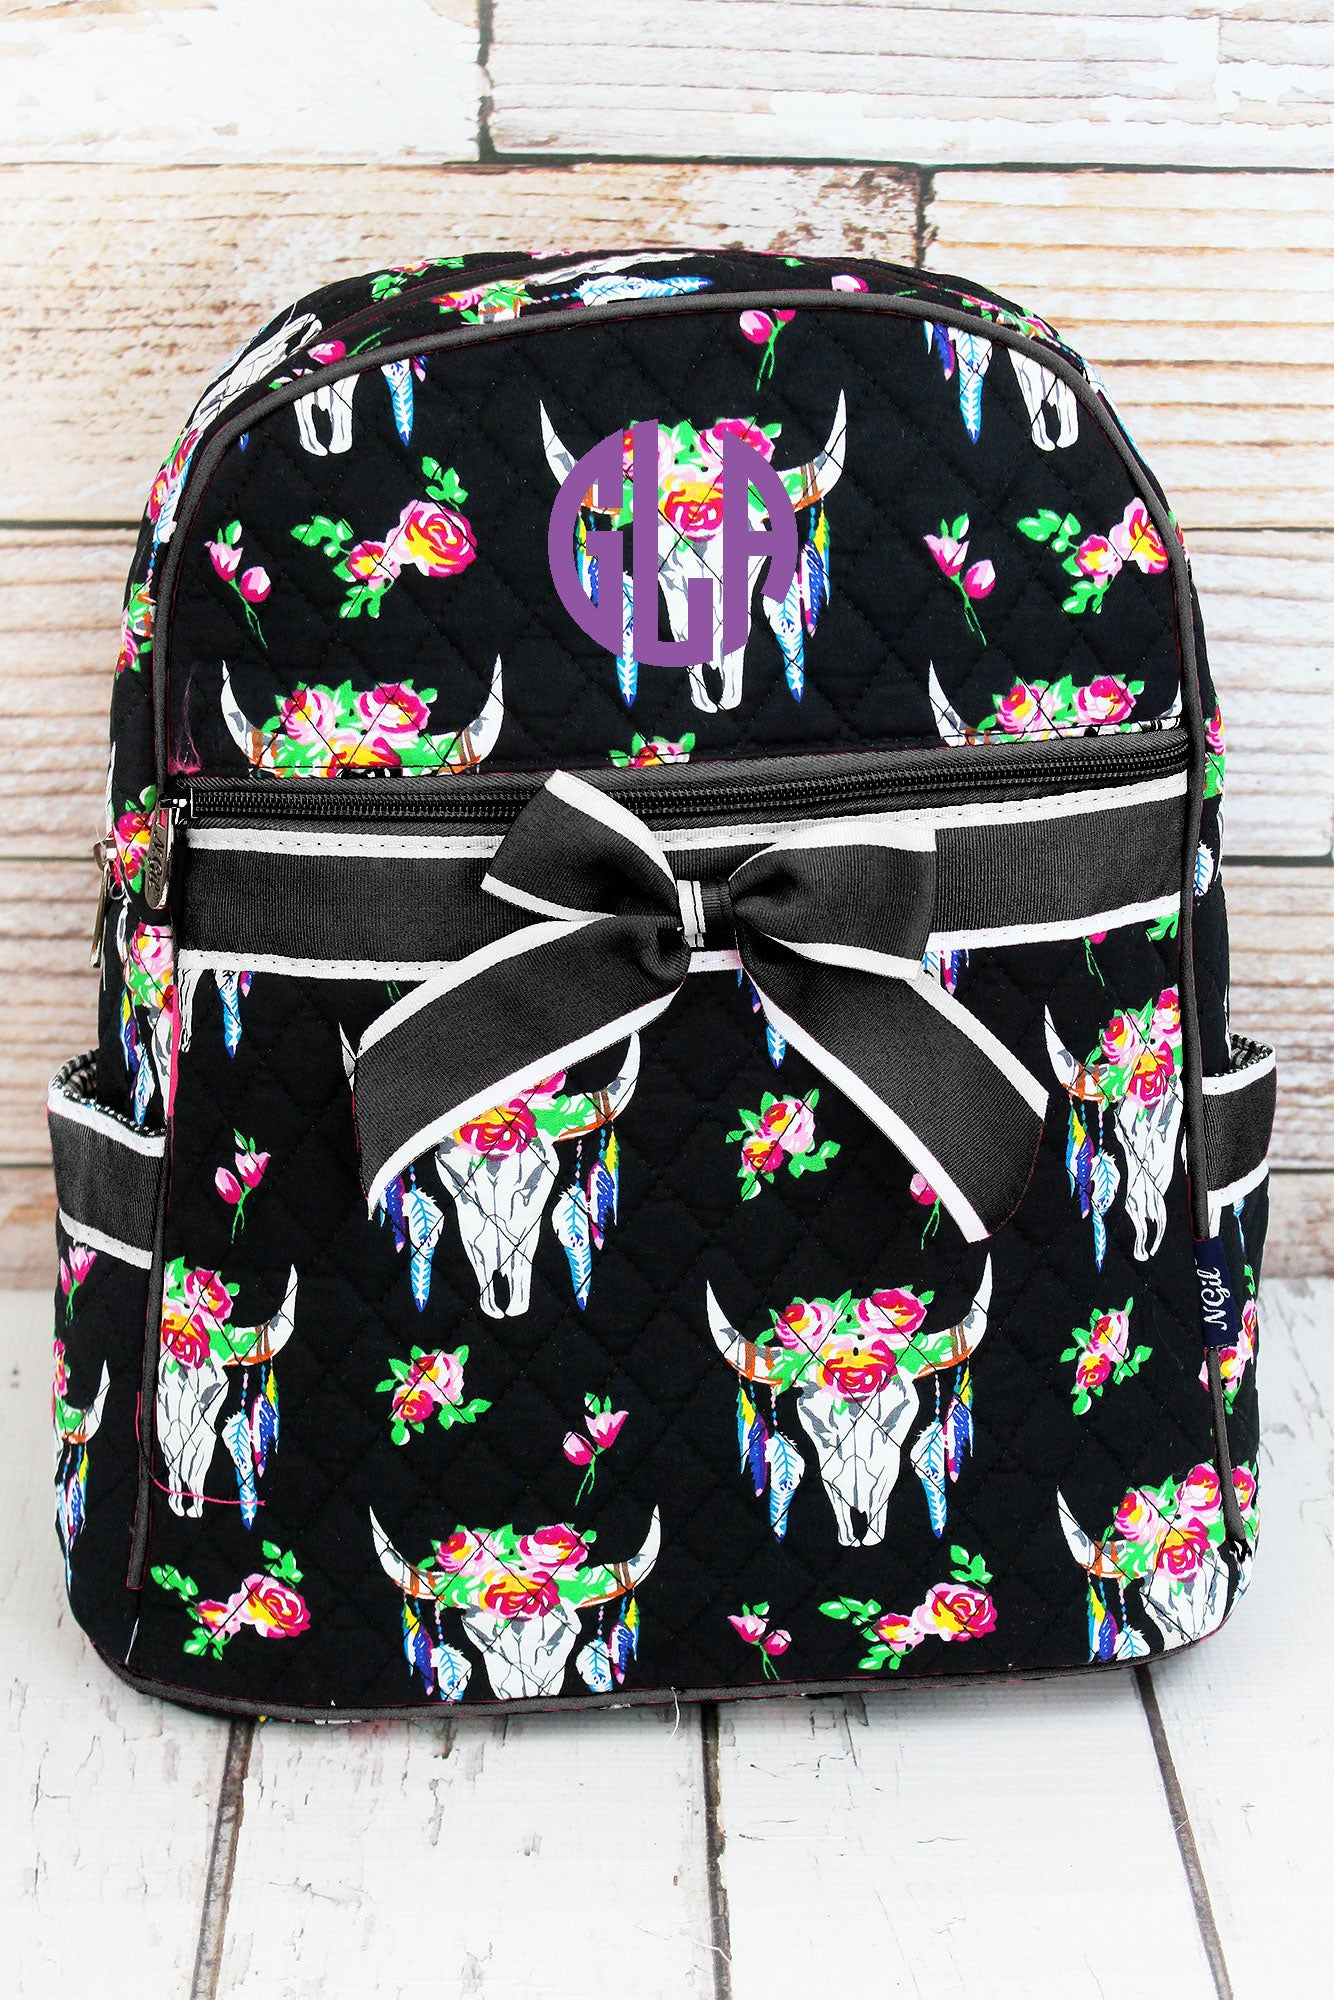 Free Spirit Steer Quilted Backpack With Black Trim